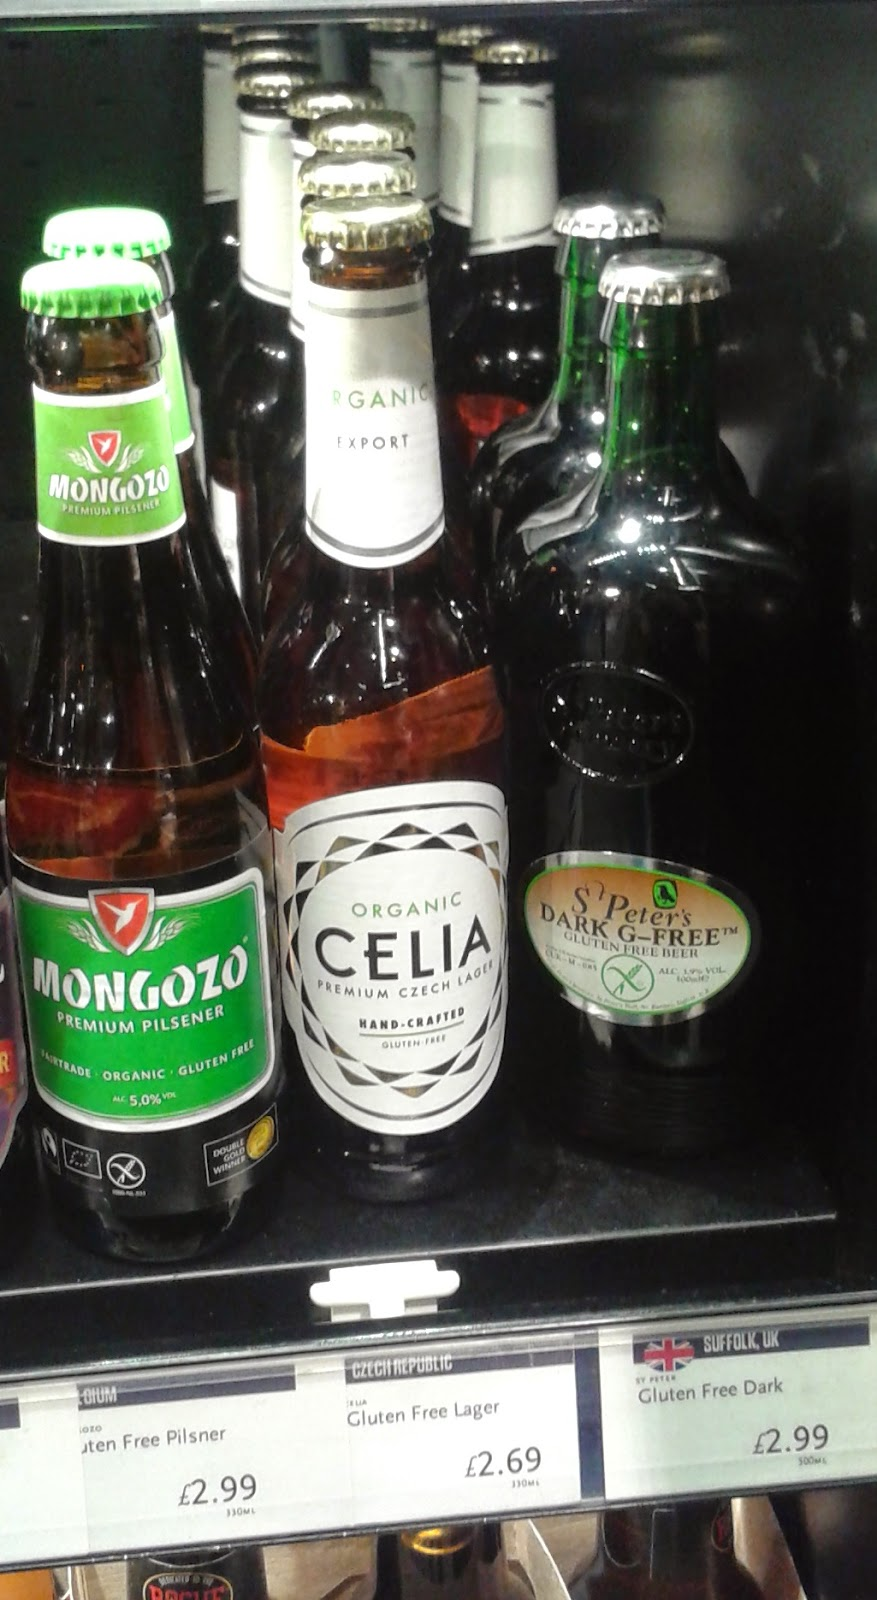 Gluten Free Beer and Lager in Whole Foods Market Piccadilly